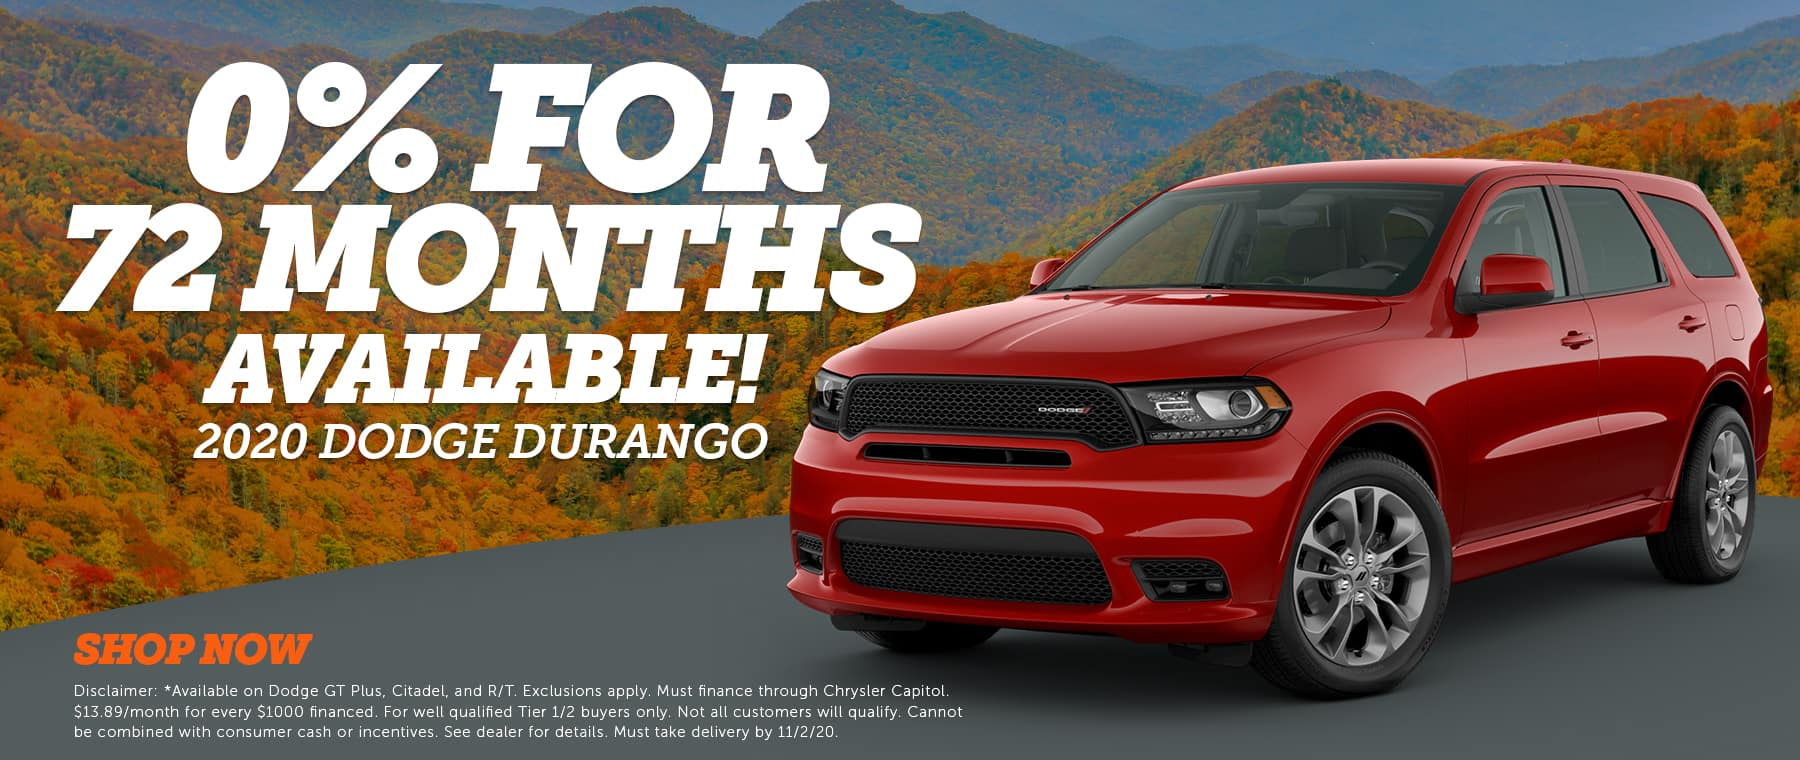 Rick-Hendrick-Jeep-Chrysler-Dodge-RAM—Oct20_TR_Durango-1800×760